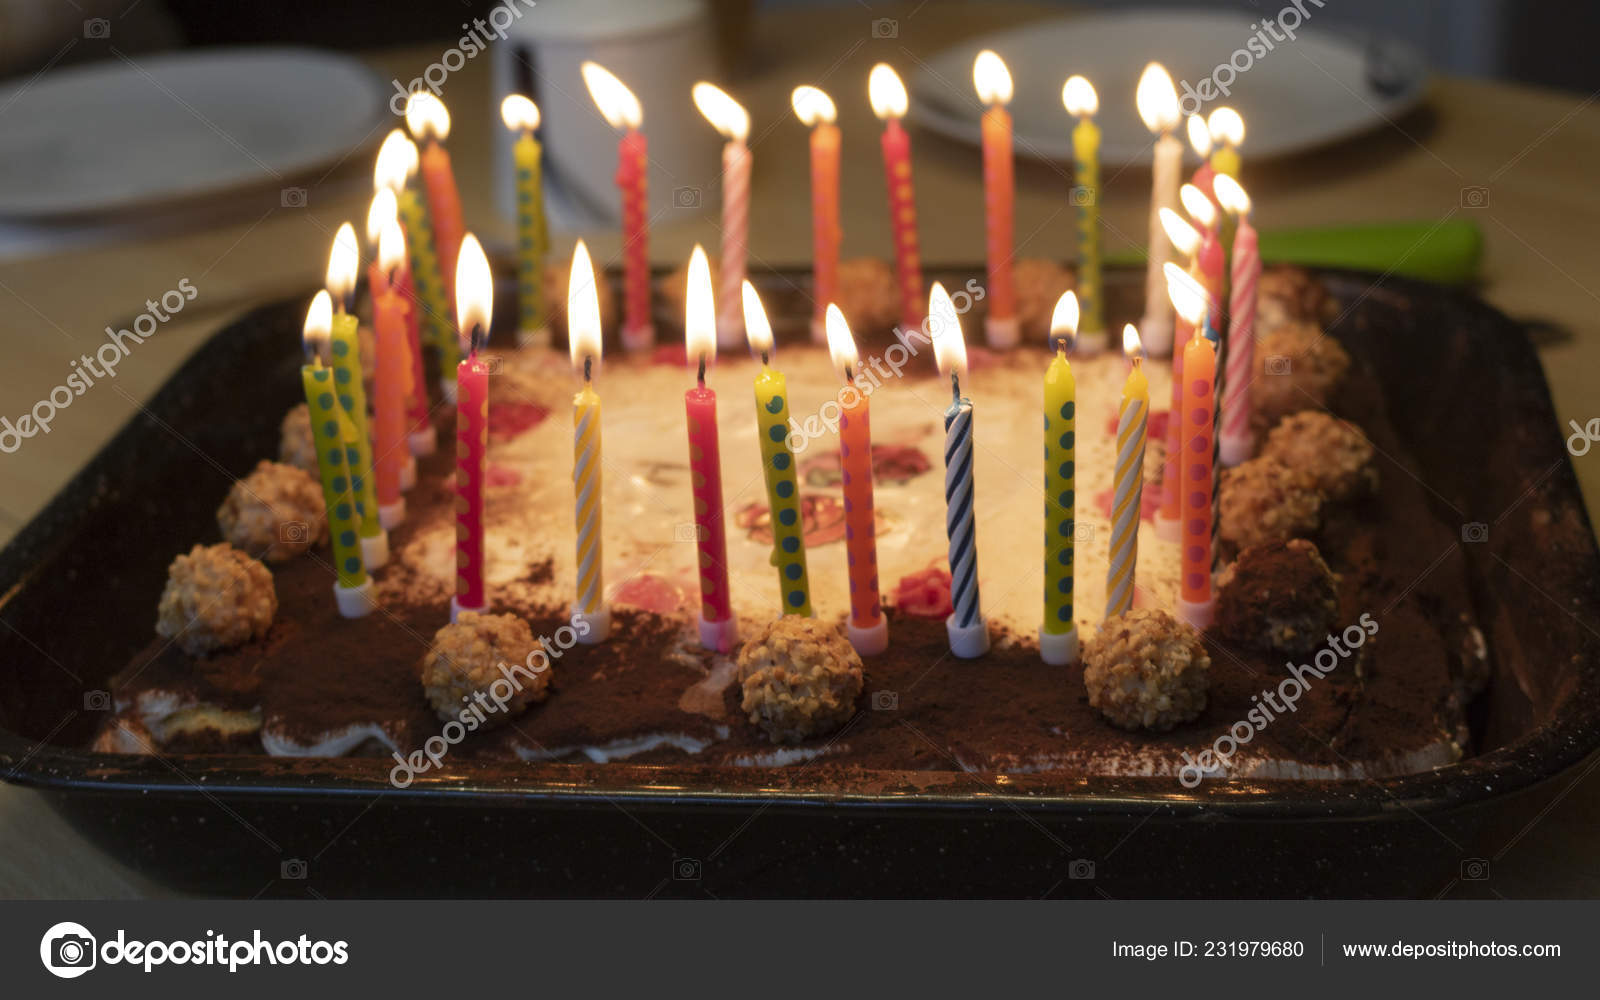 Fine Happy Birthday Cake Candles Stock Photo C Vsfotos 231979680 Funny Birthday Cards Online Inifofree Goldxyz